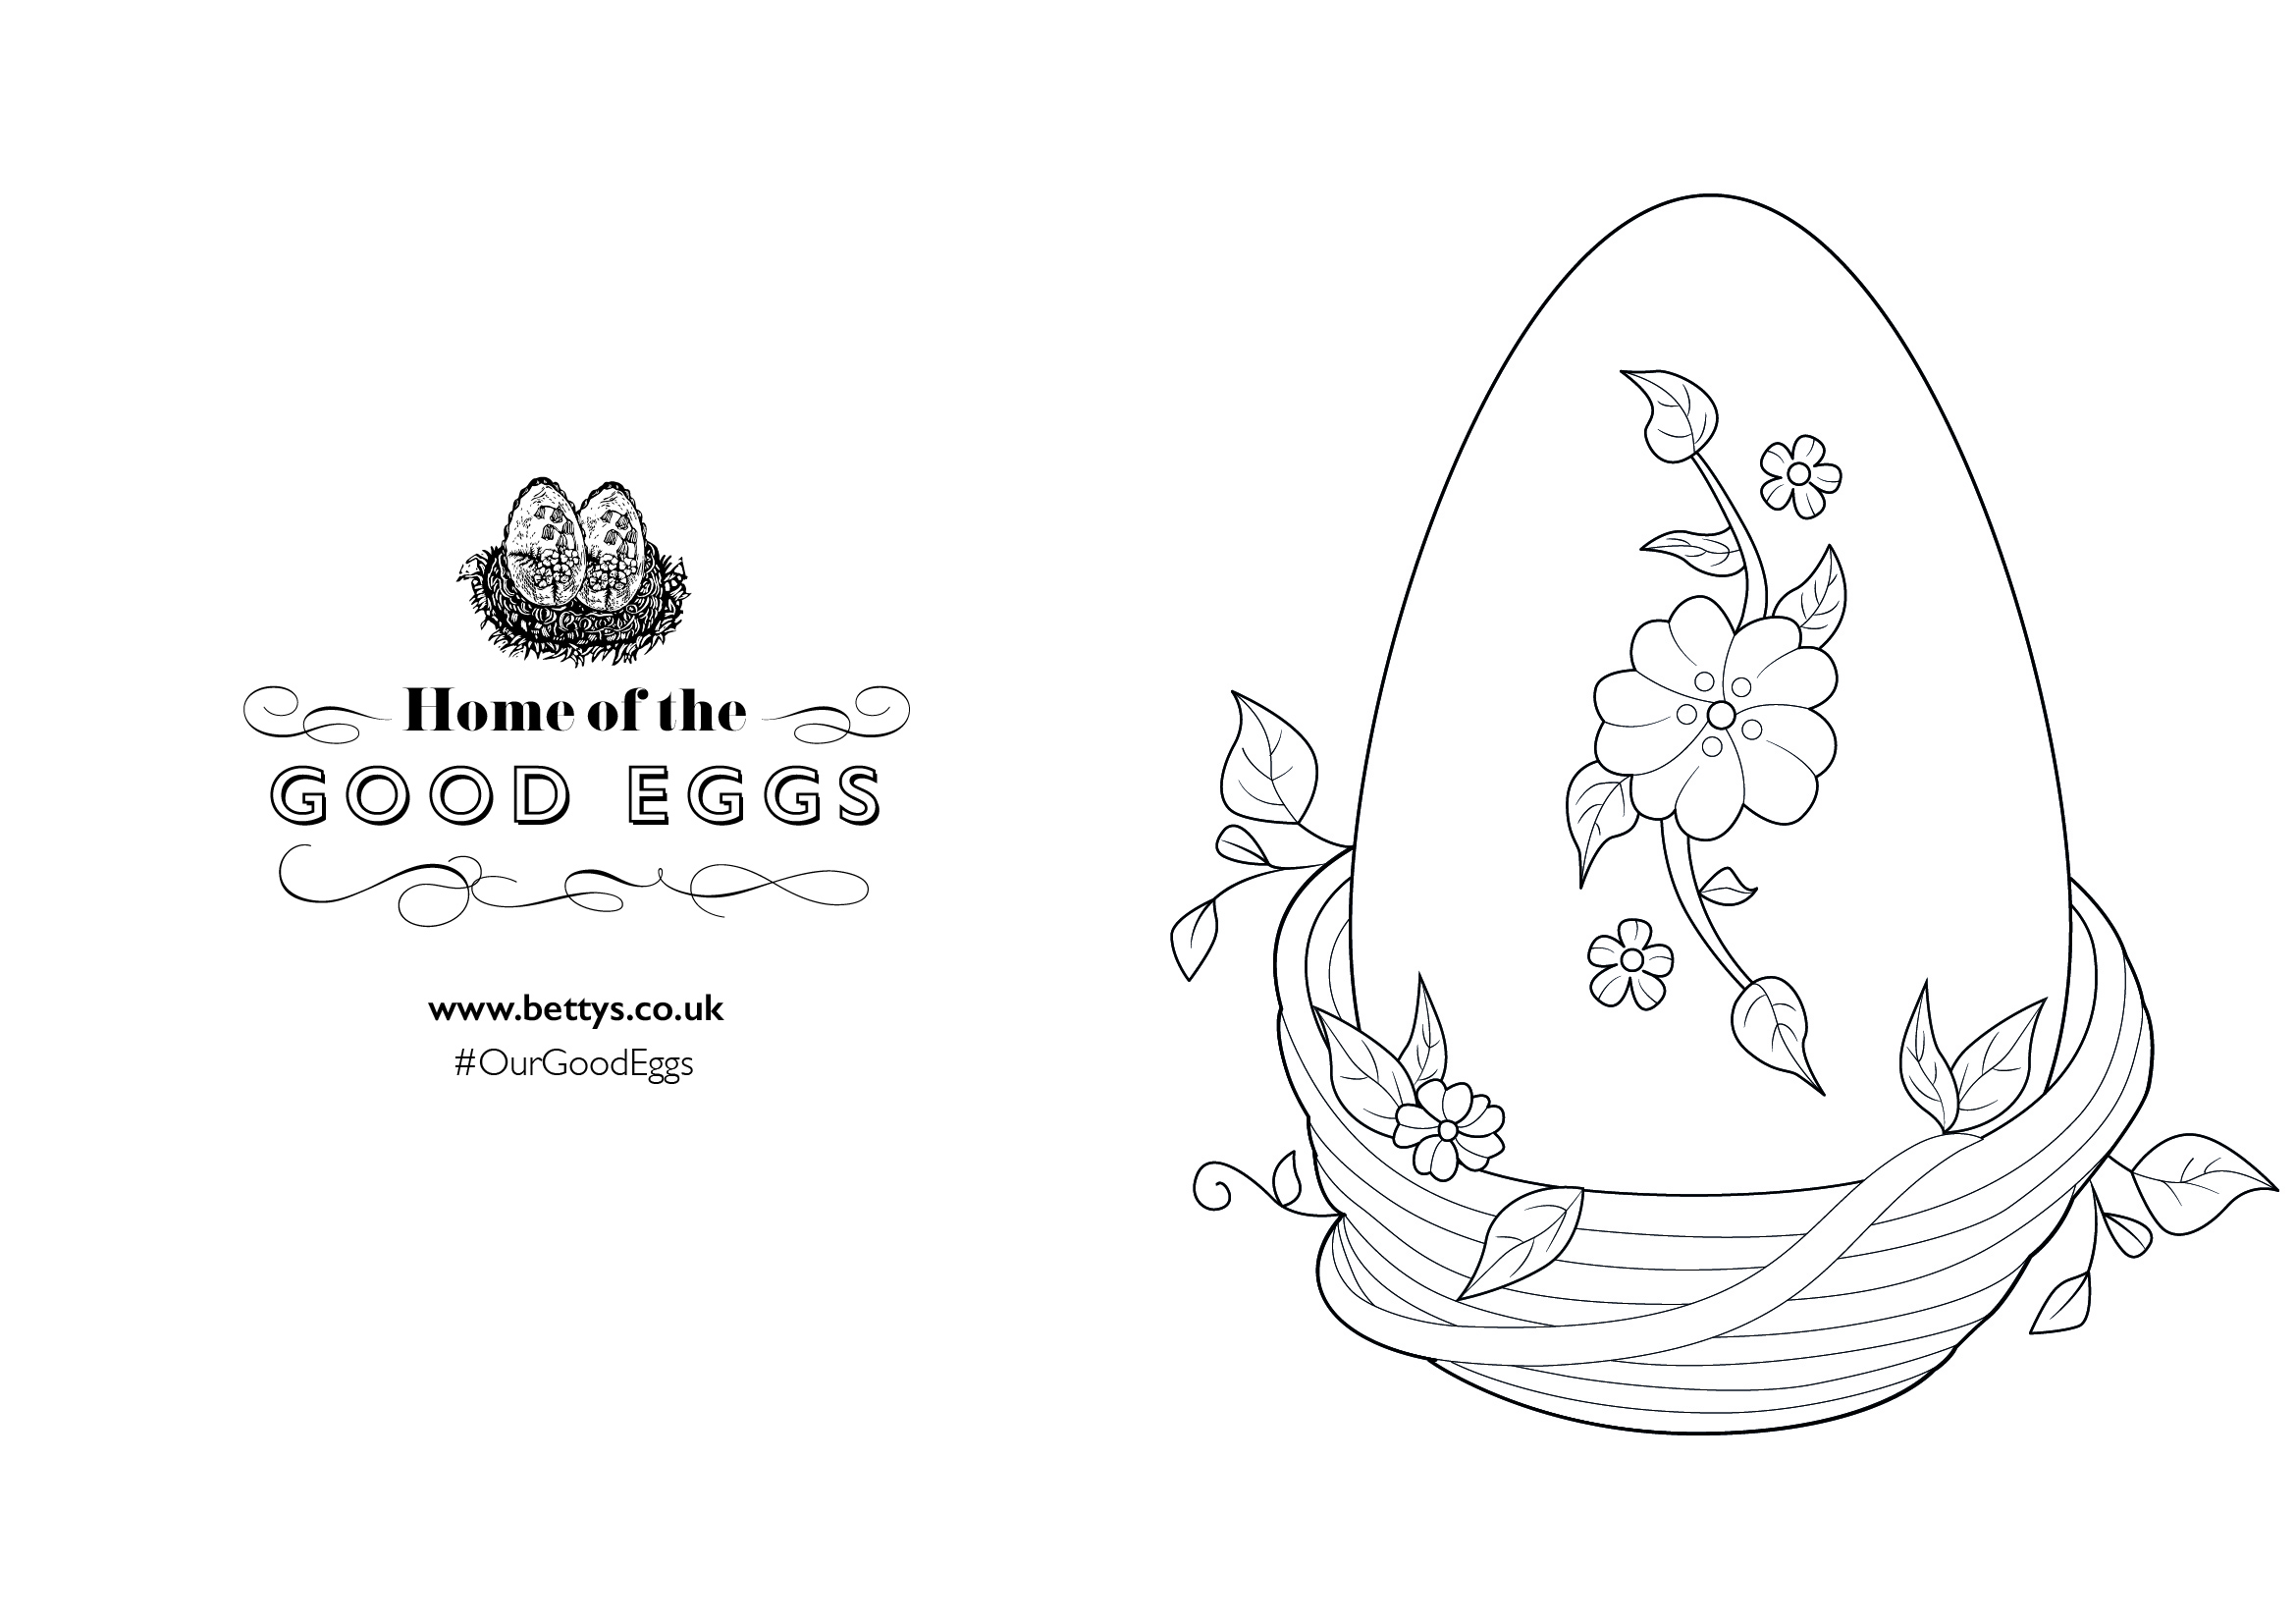 image regarding Easter Card Printable identified as Blog site - Develop a personalized Easter card versus one particular superior egg